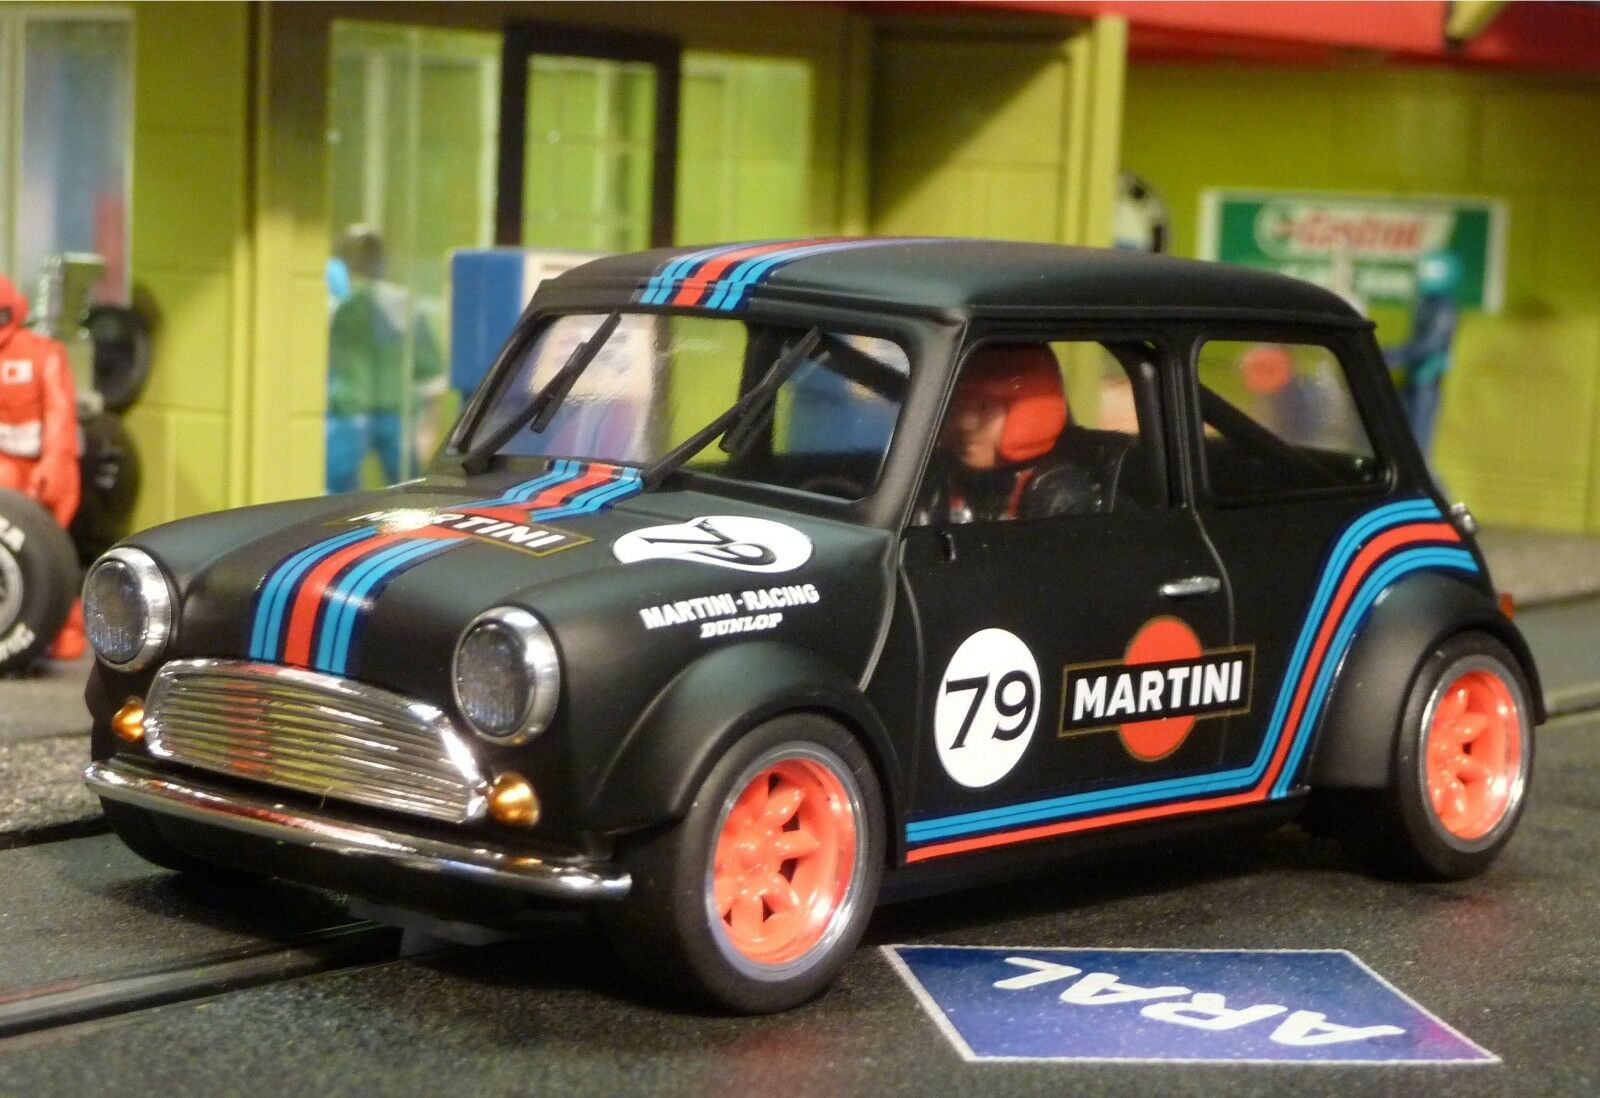 Slotcar BRM MINI Cooper MARTINI in 1 24 VORBEREITET für Carrera Digital  BRM090B